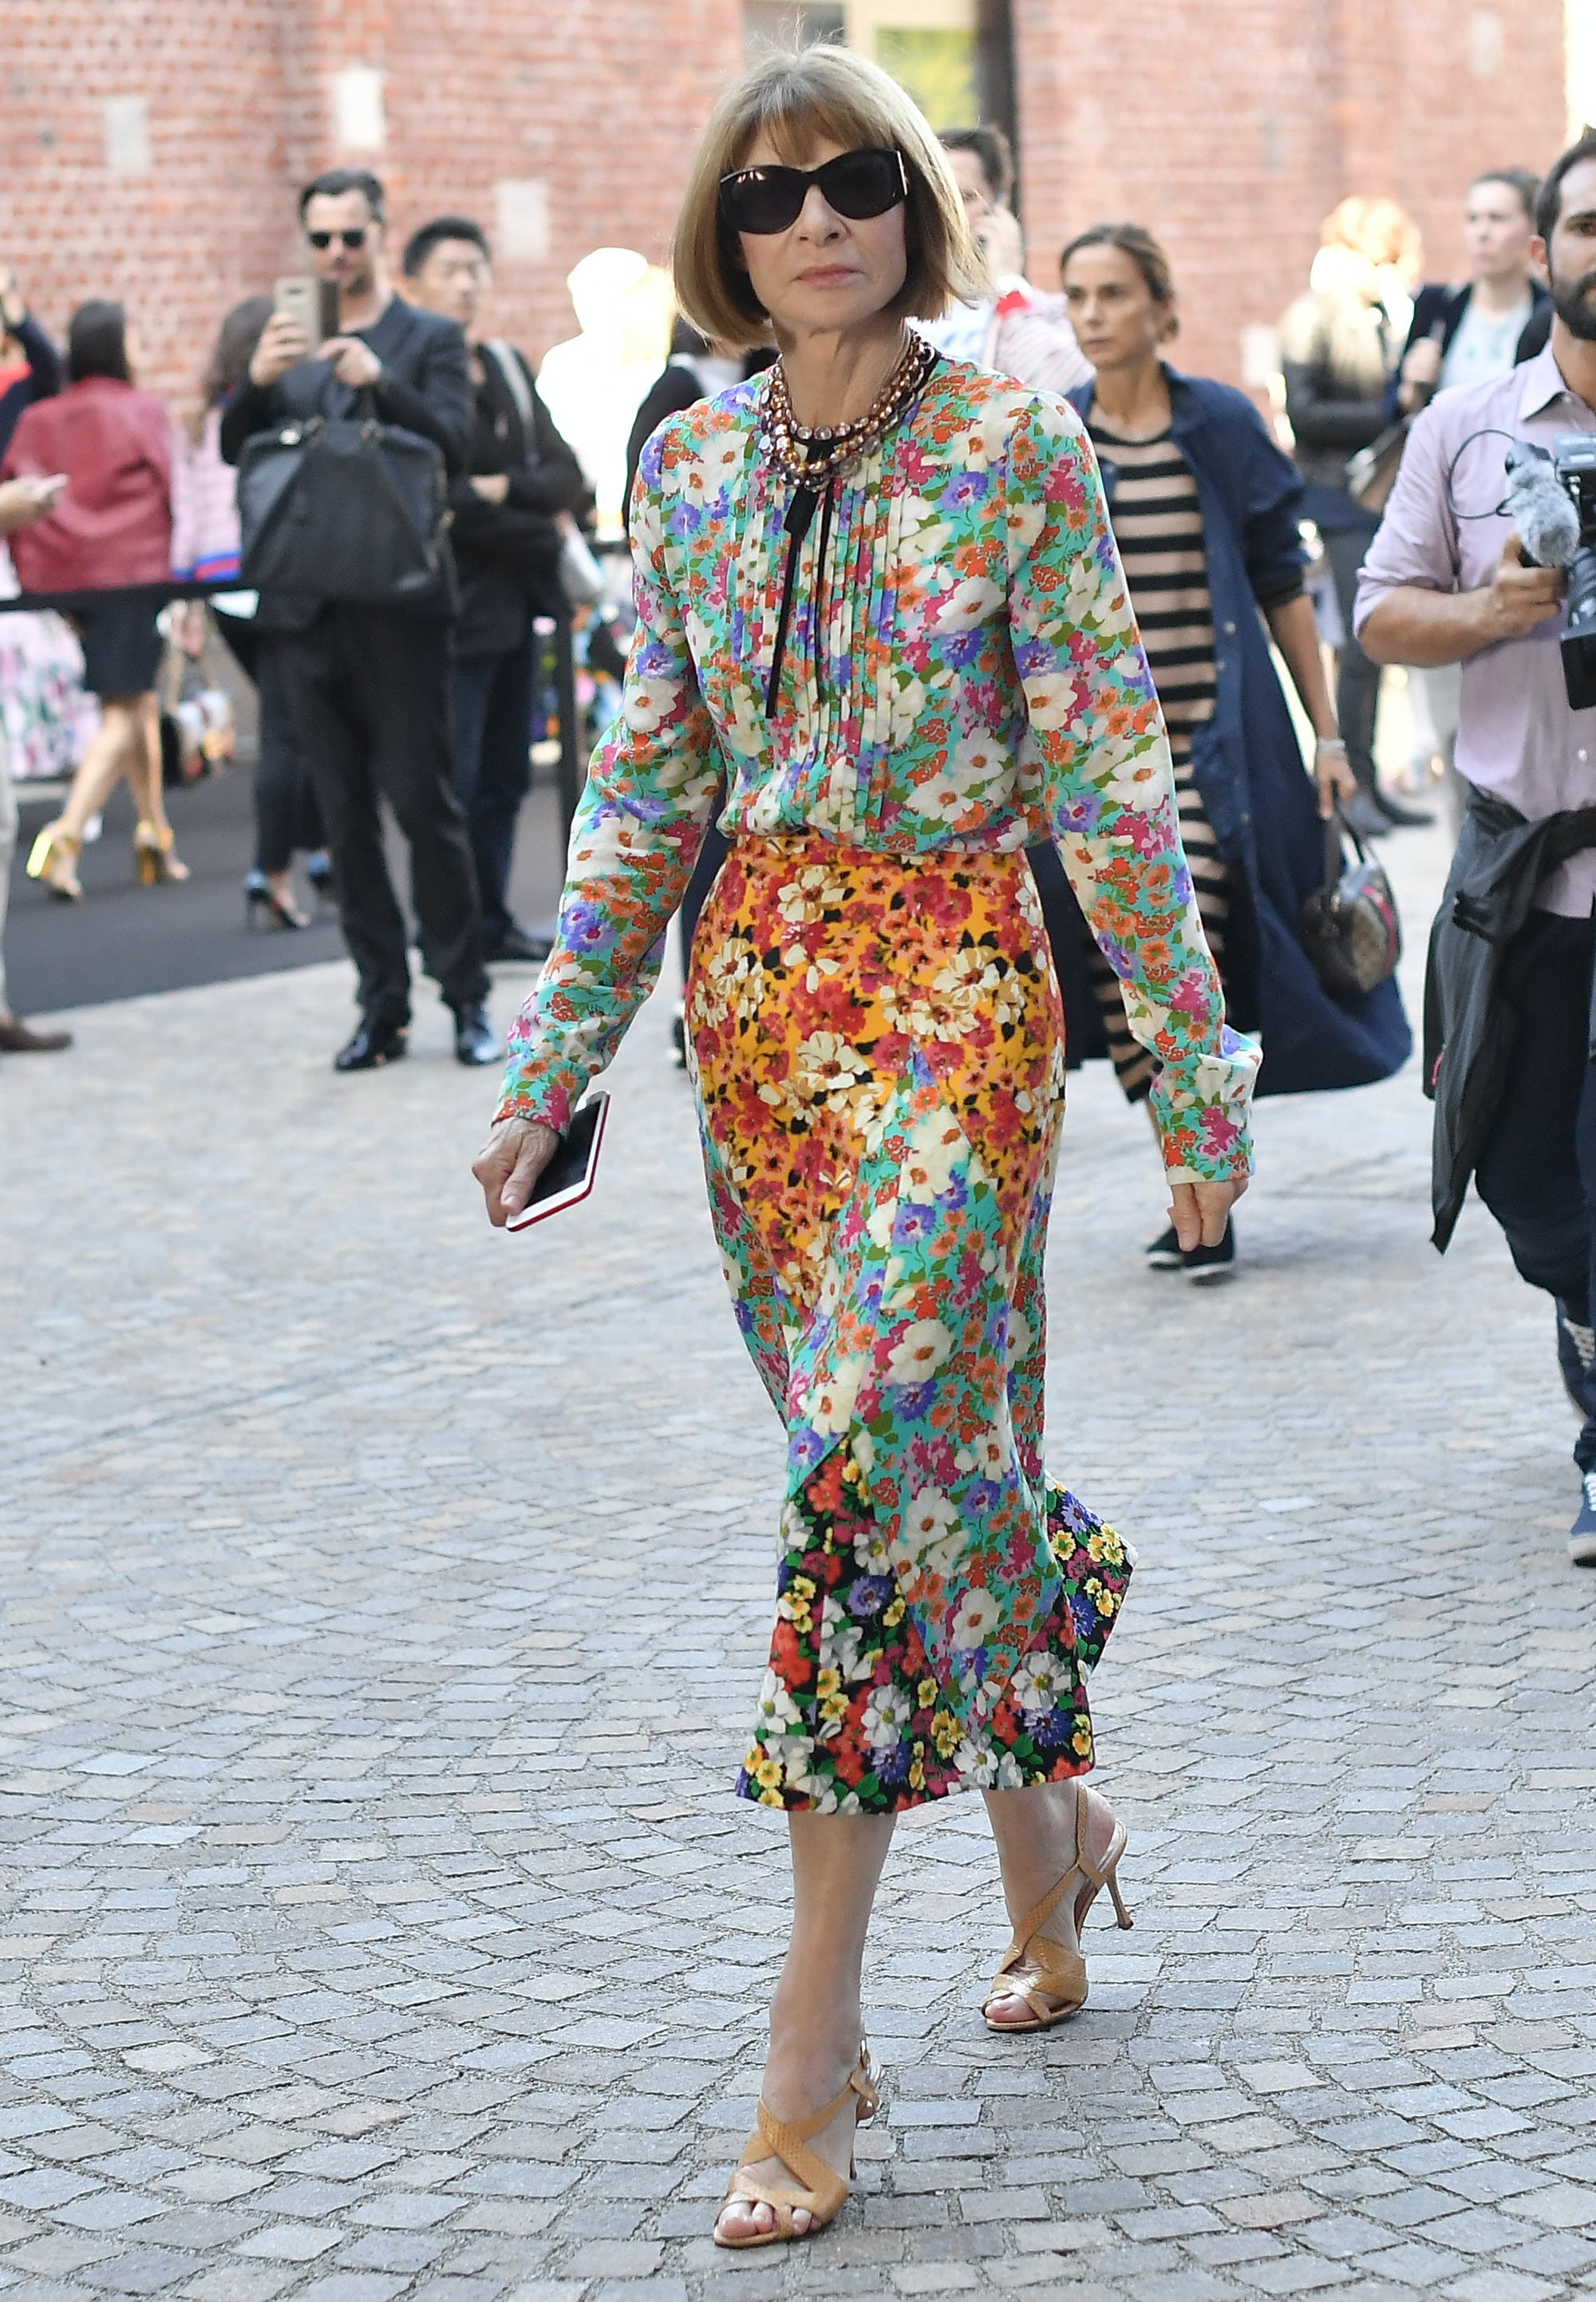 Anna Wintour wearing a mixed floral print dress a6ded9be7